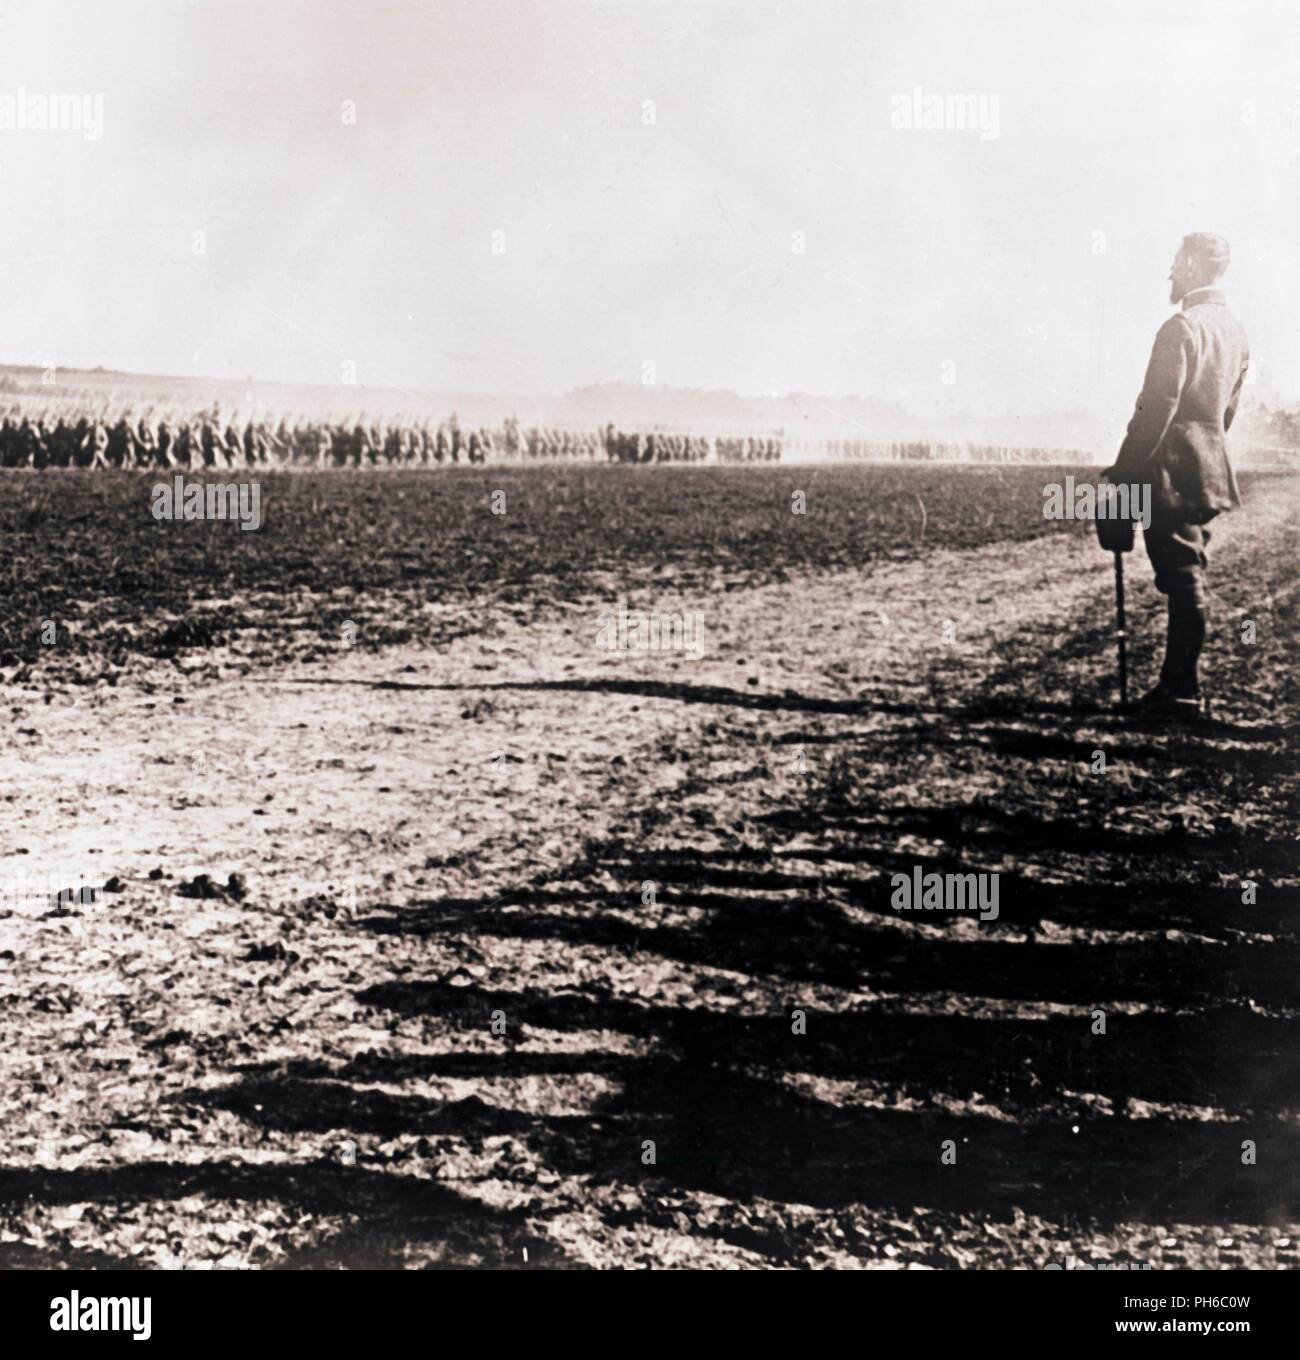 General Henri Gouraud surveying field of troops, c1914-c1918. French general Henri Joseph Eugène Gouraud (1867-1946), best known for his leadership of the French Fourth Army at the end of the First World War. Photograph from a series of glass plate stereoview images depicting scenes from World War I (1914-1918). - Stock Image